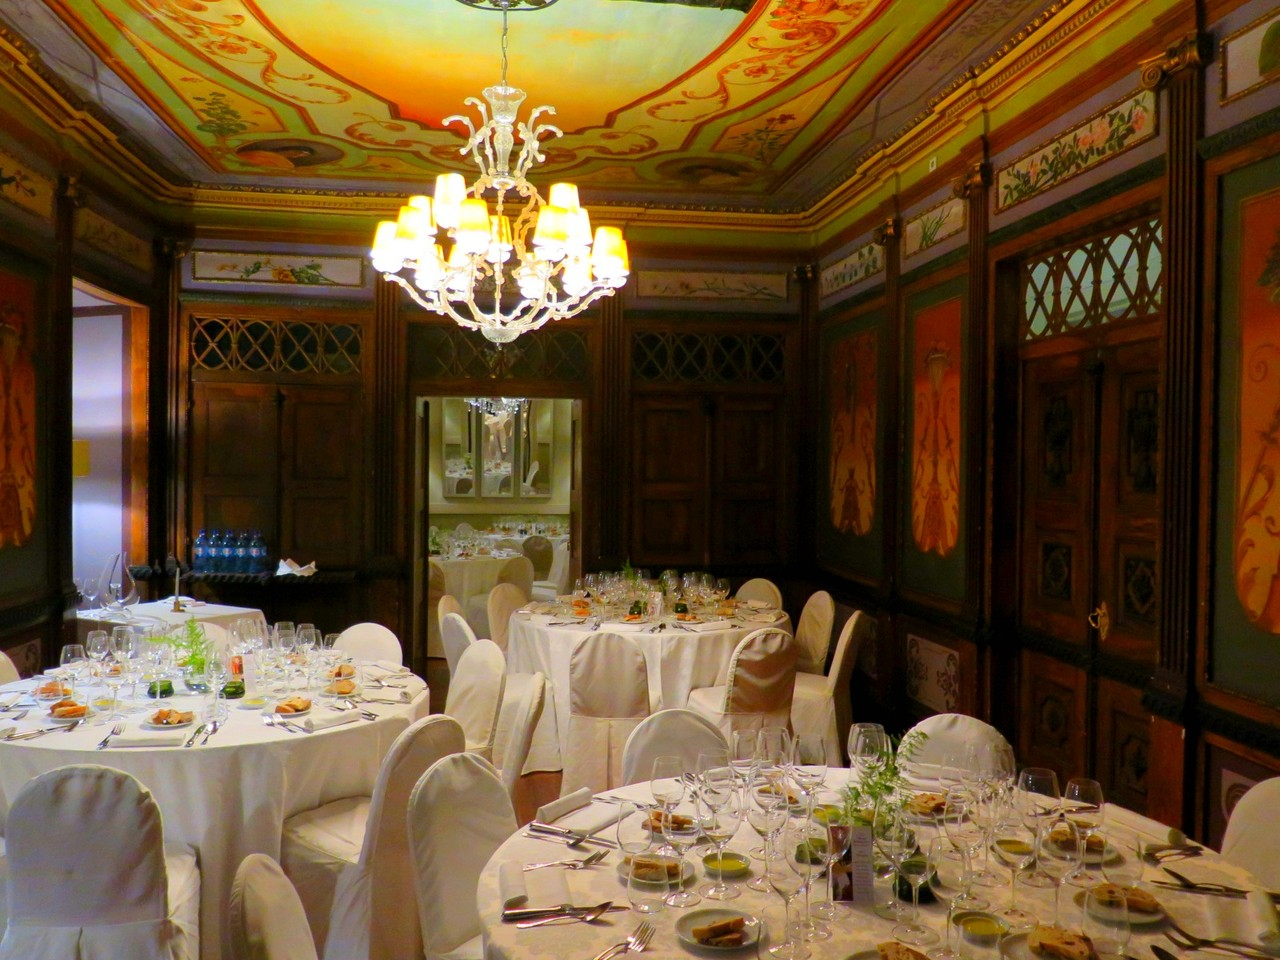 A lindíssima sala do restaurante A VISCONDESSA do Palácio da Lousã